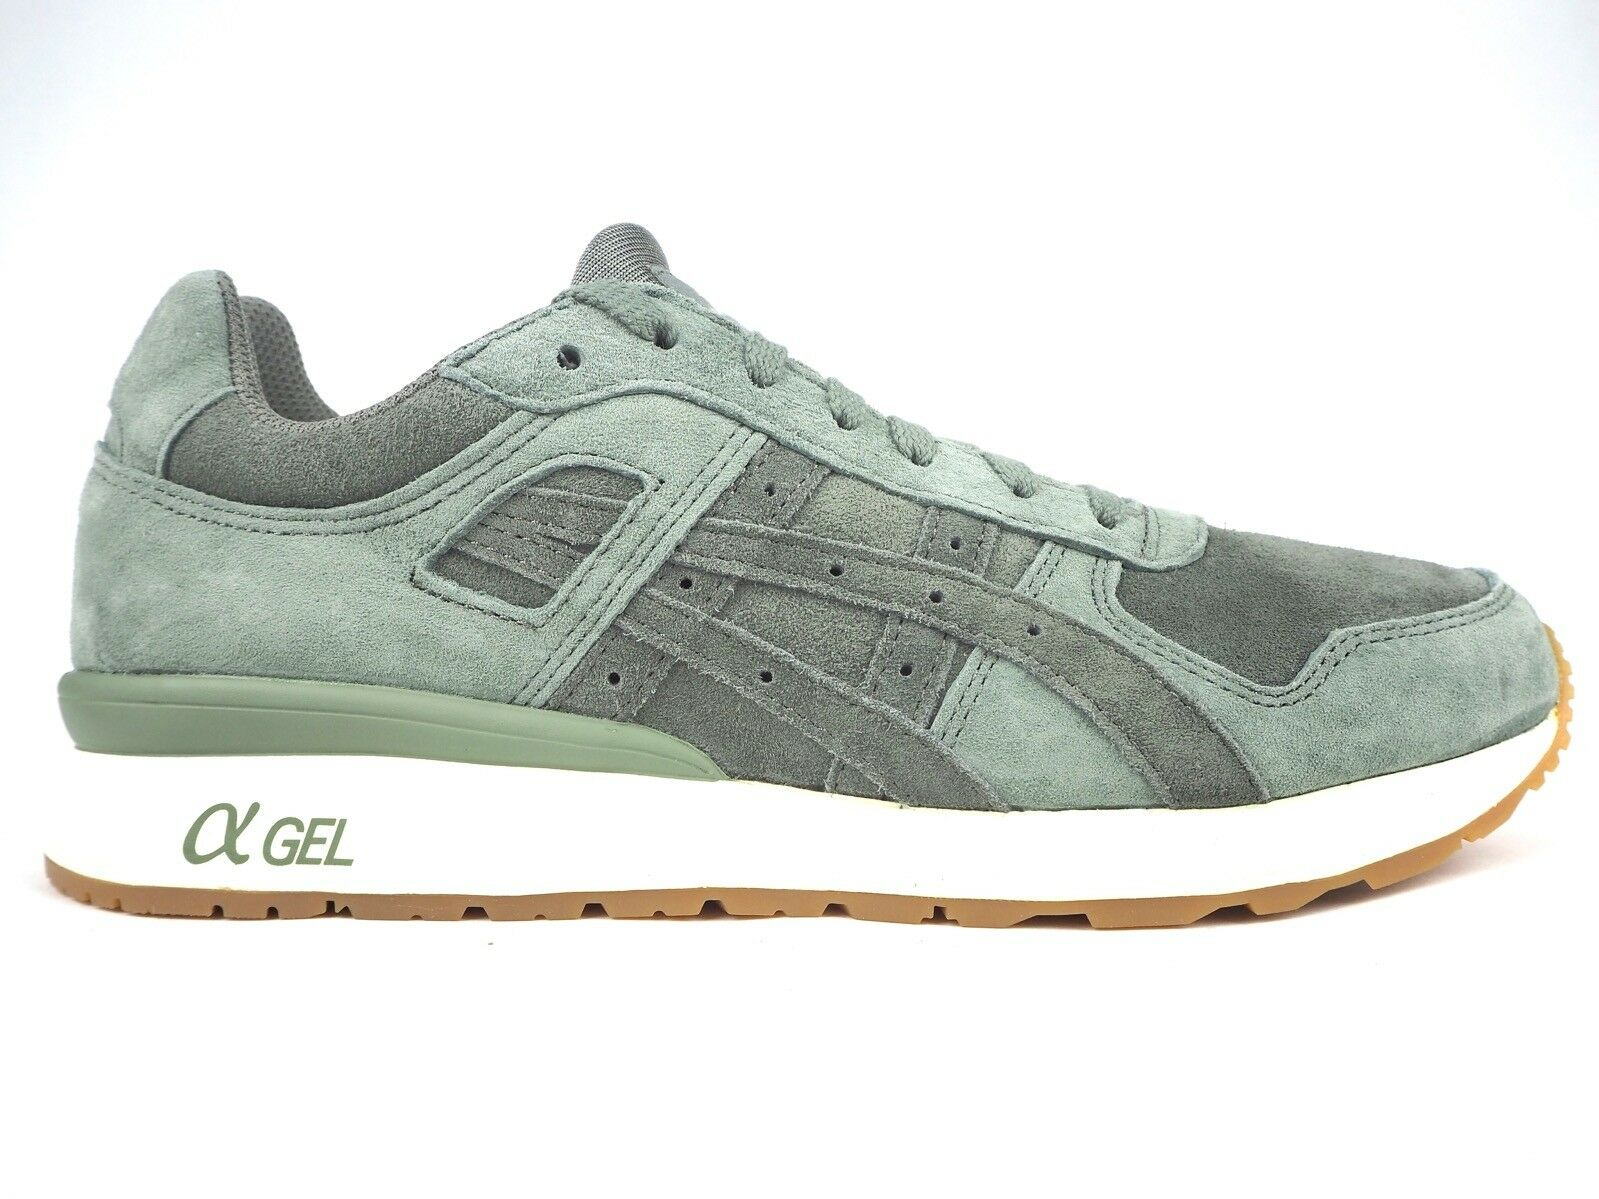 Mens Asics Gel II H7T1L 8131 Agave Green Lace Up Leather Casual Trainers